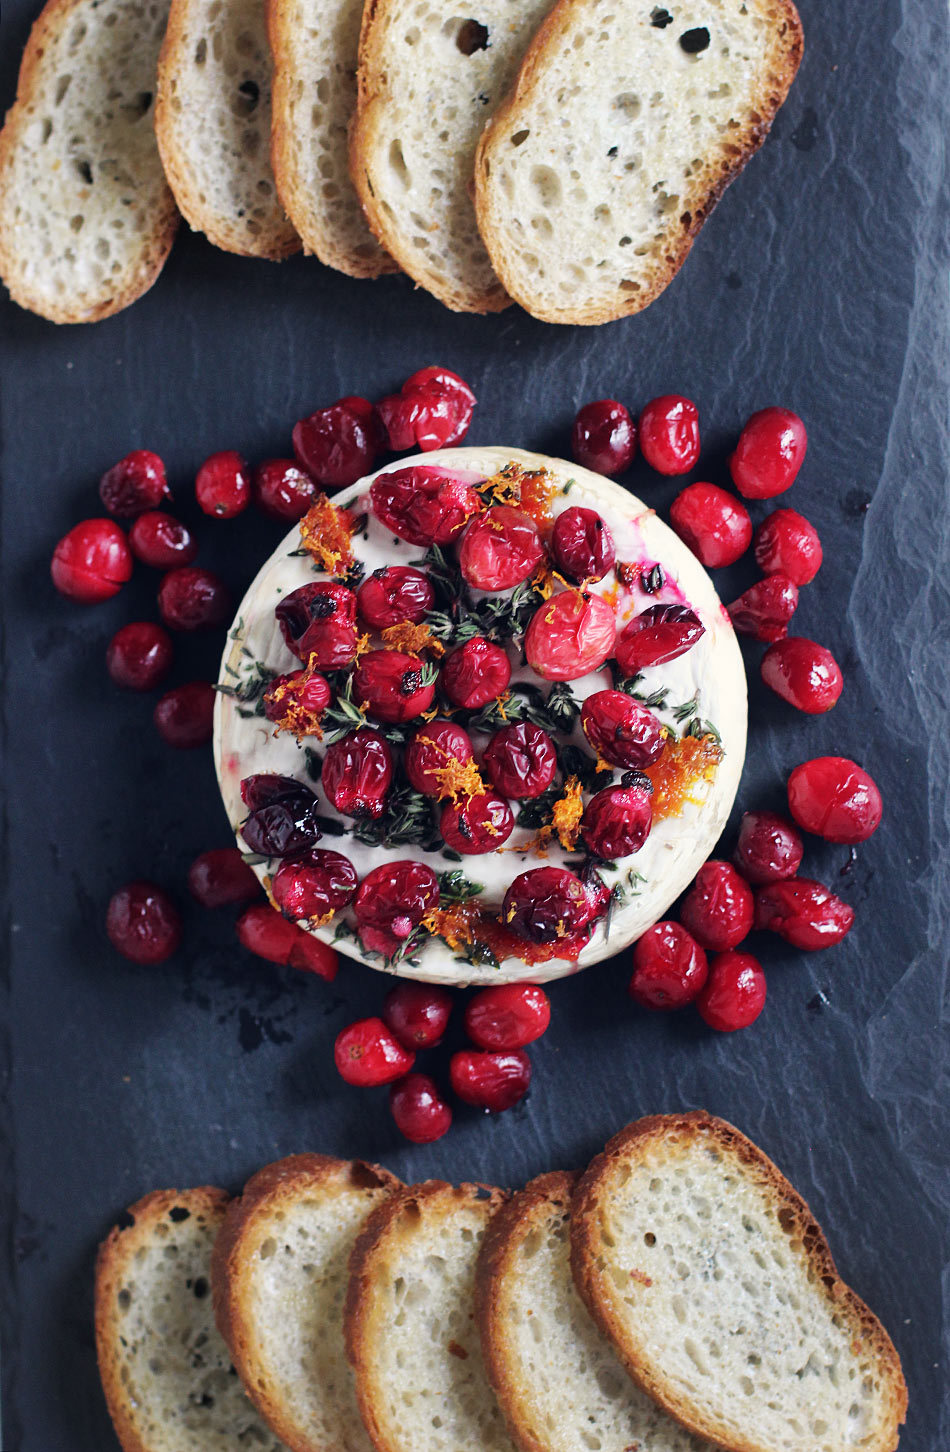 Baked Brie with Maple-Roasted Cranberries